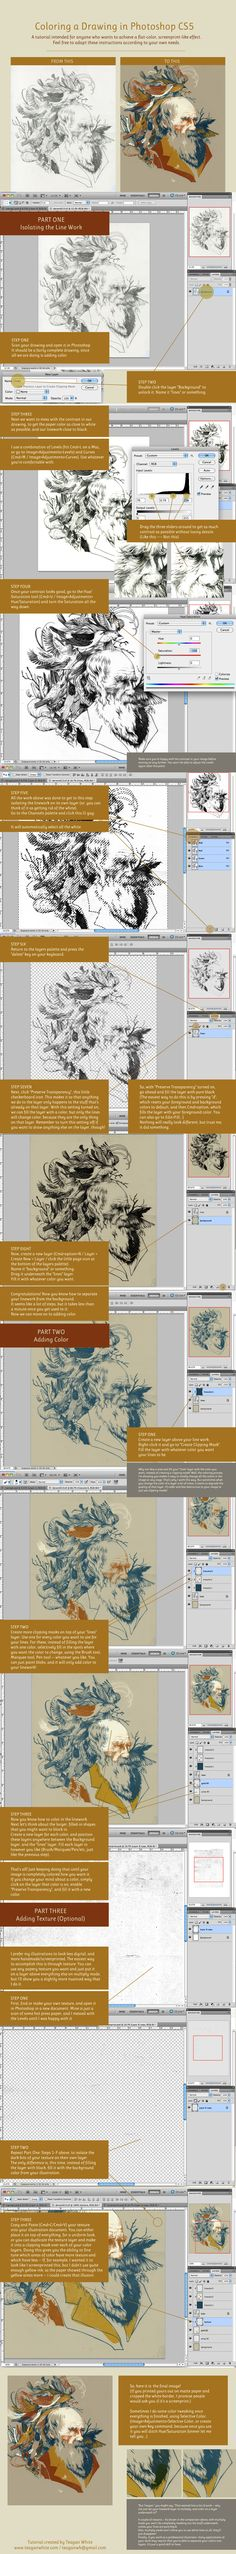 Coloring a Drawing in Photoshop CS5 by *teaganwhite on deviantART